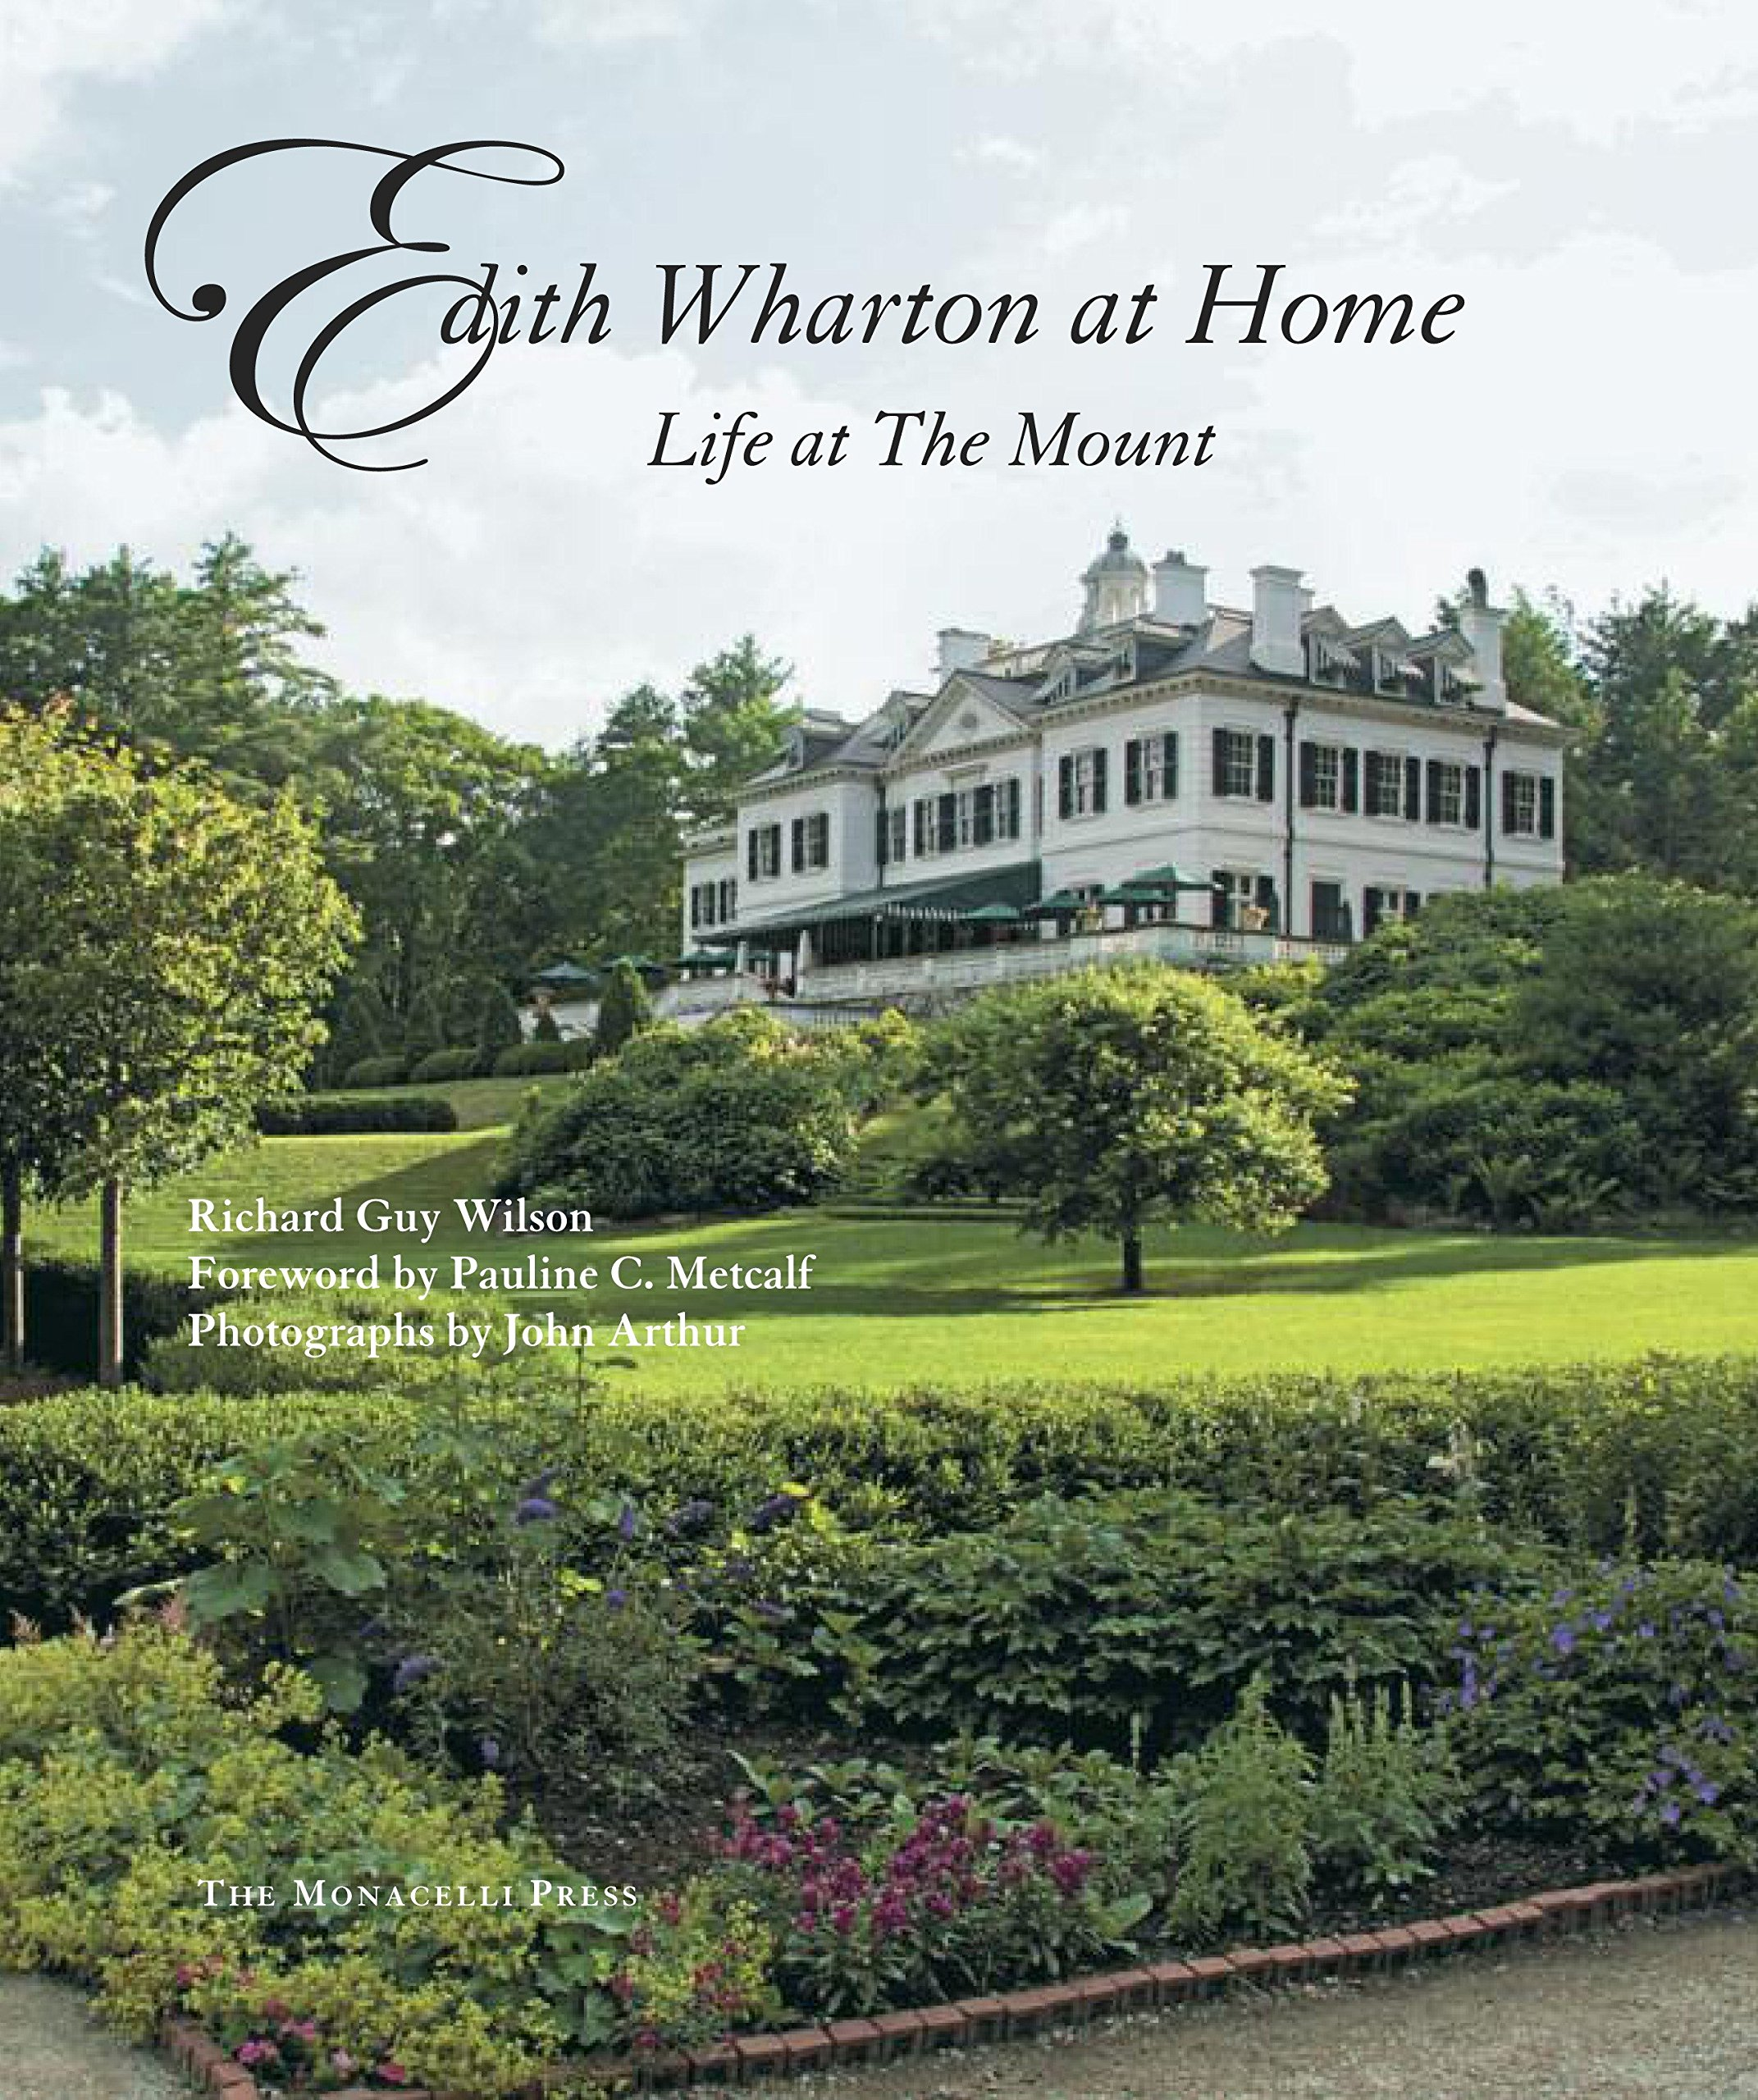 Edith Wharton Home: Life at the Mount by Richard Guy Wilson